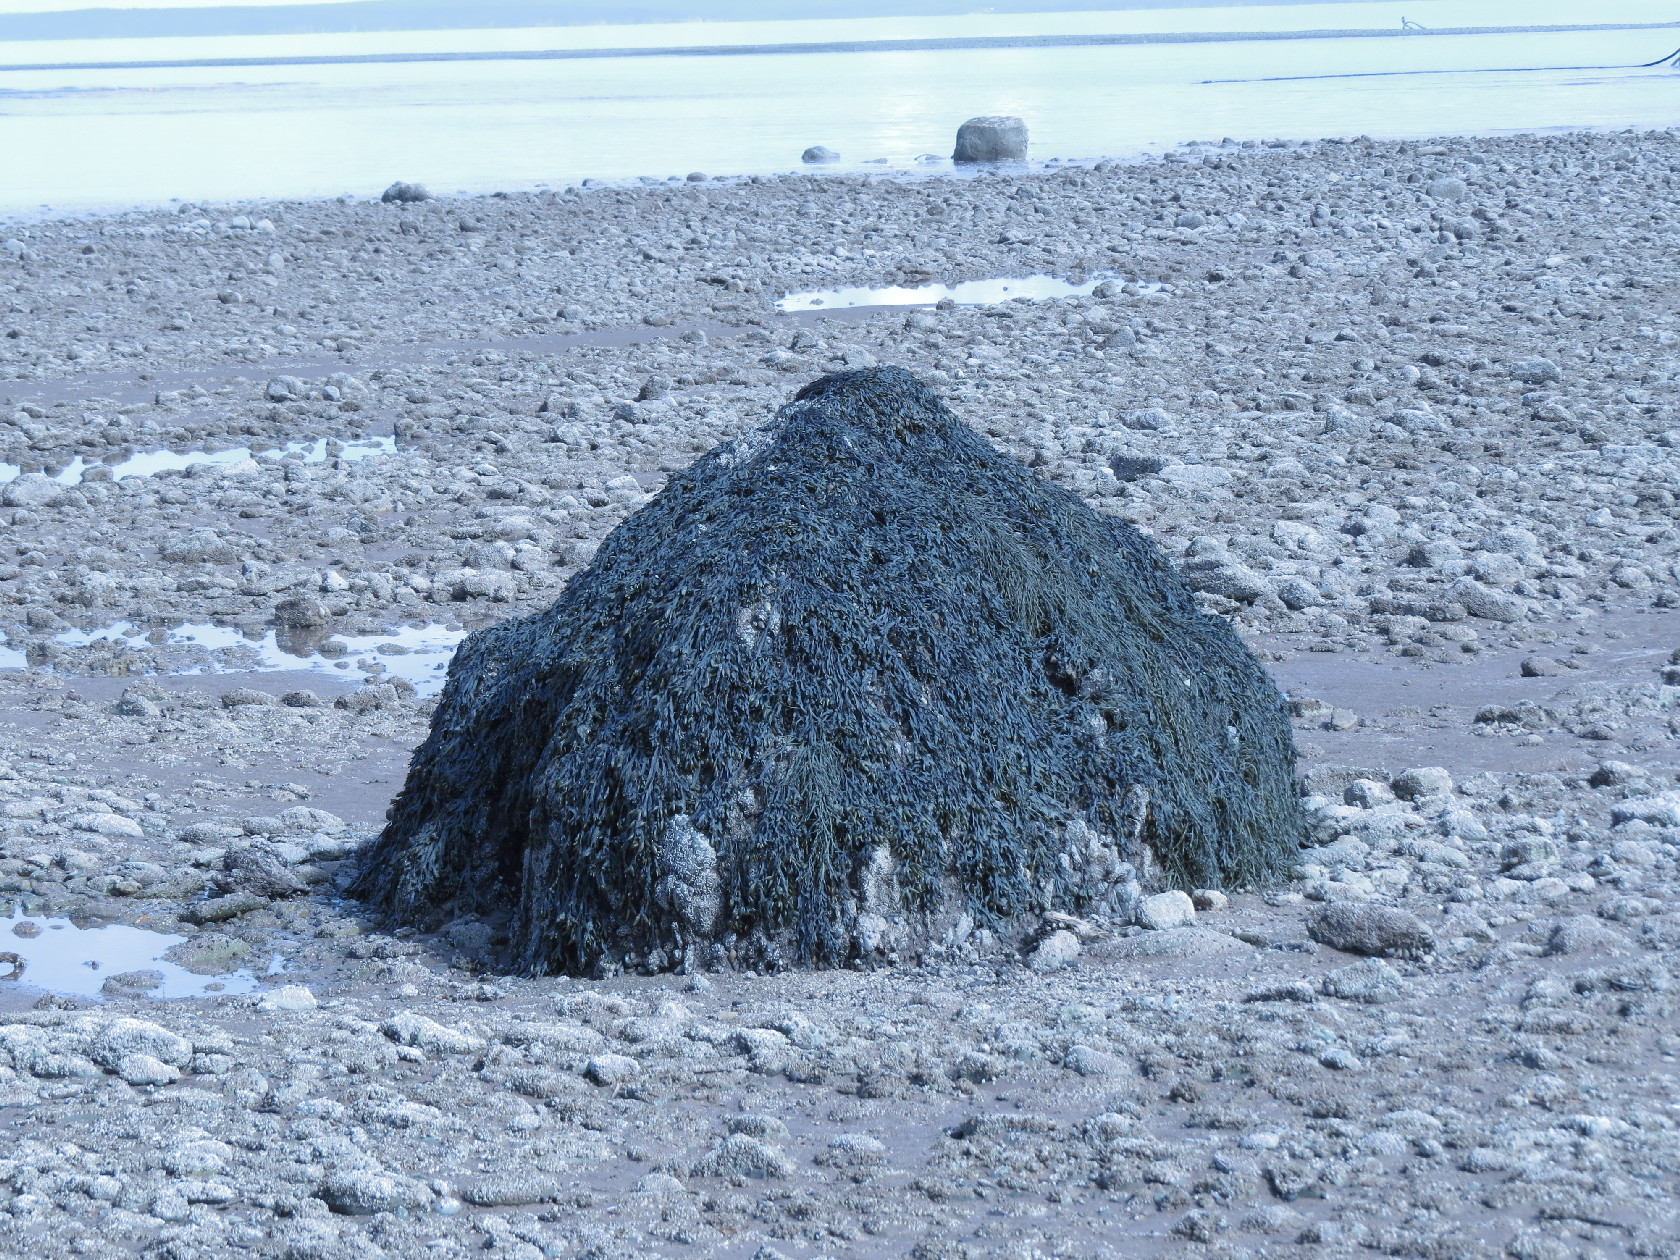 An algae-covered rock at low tide, Alma